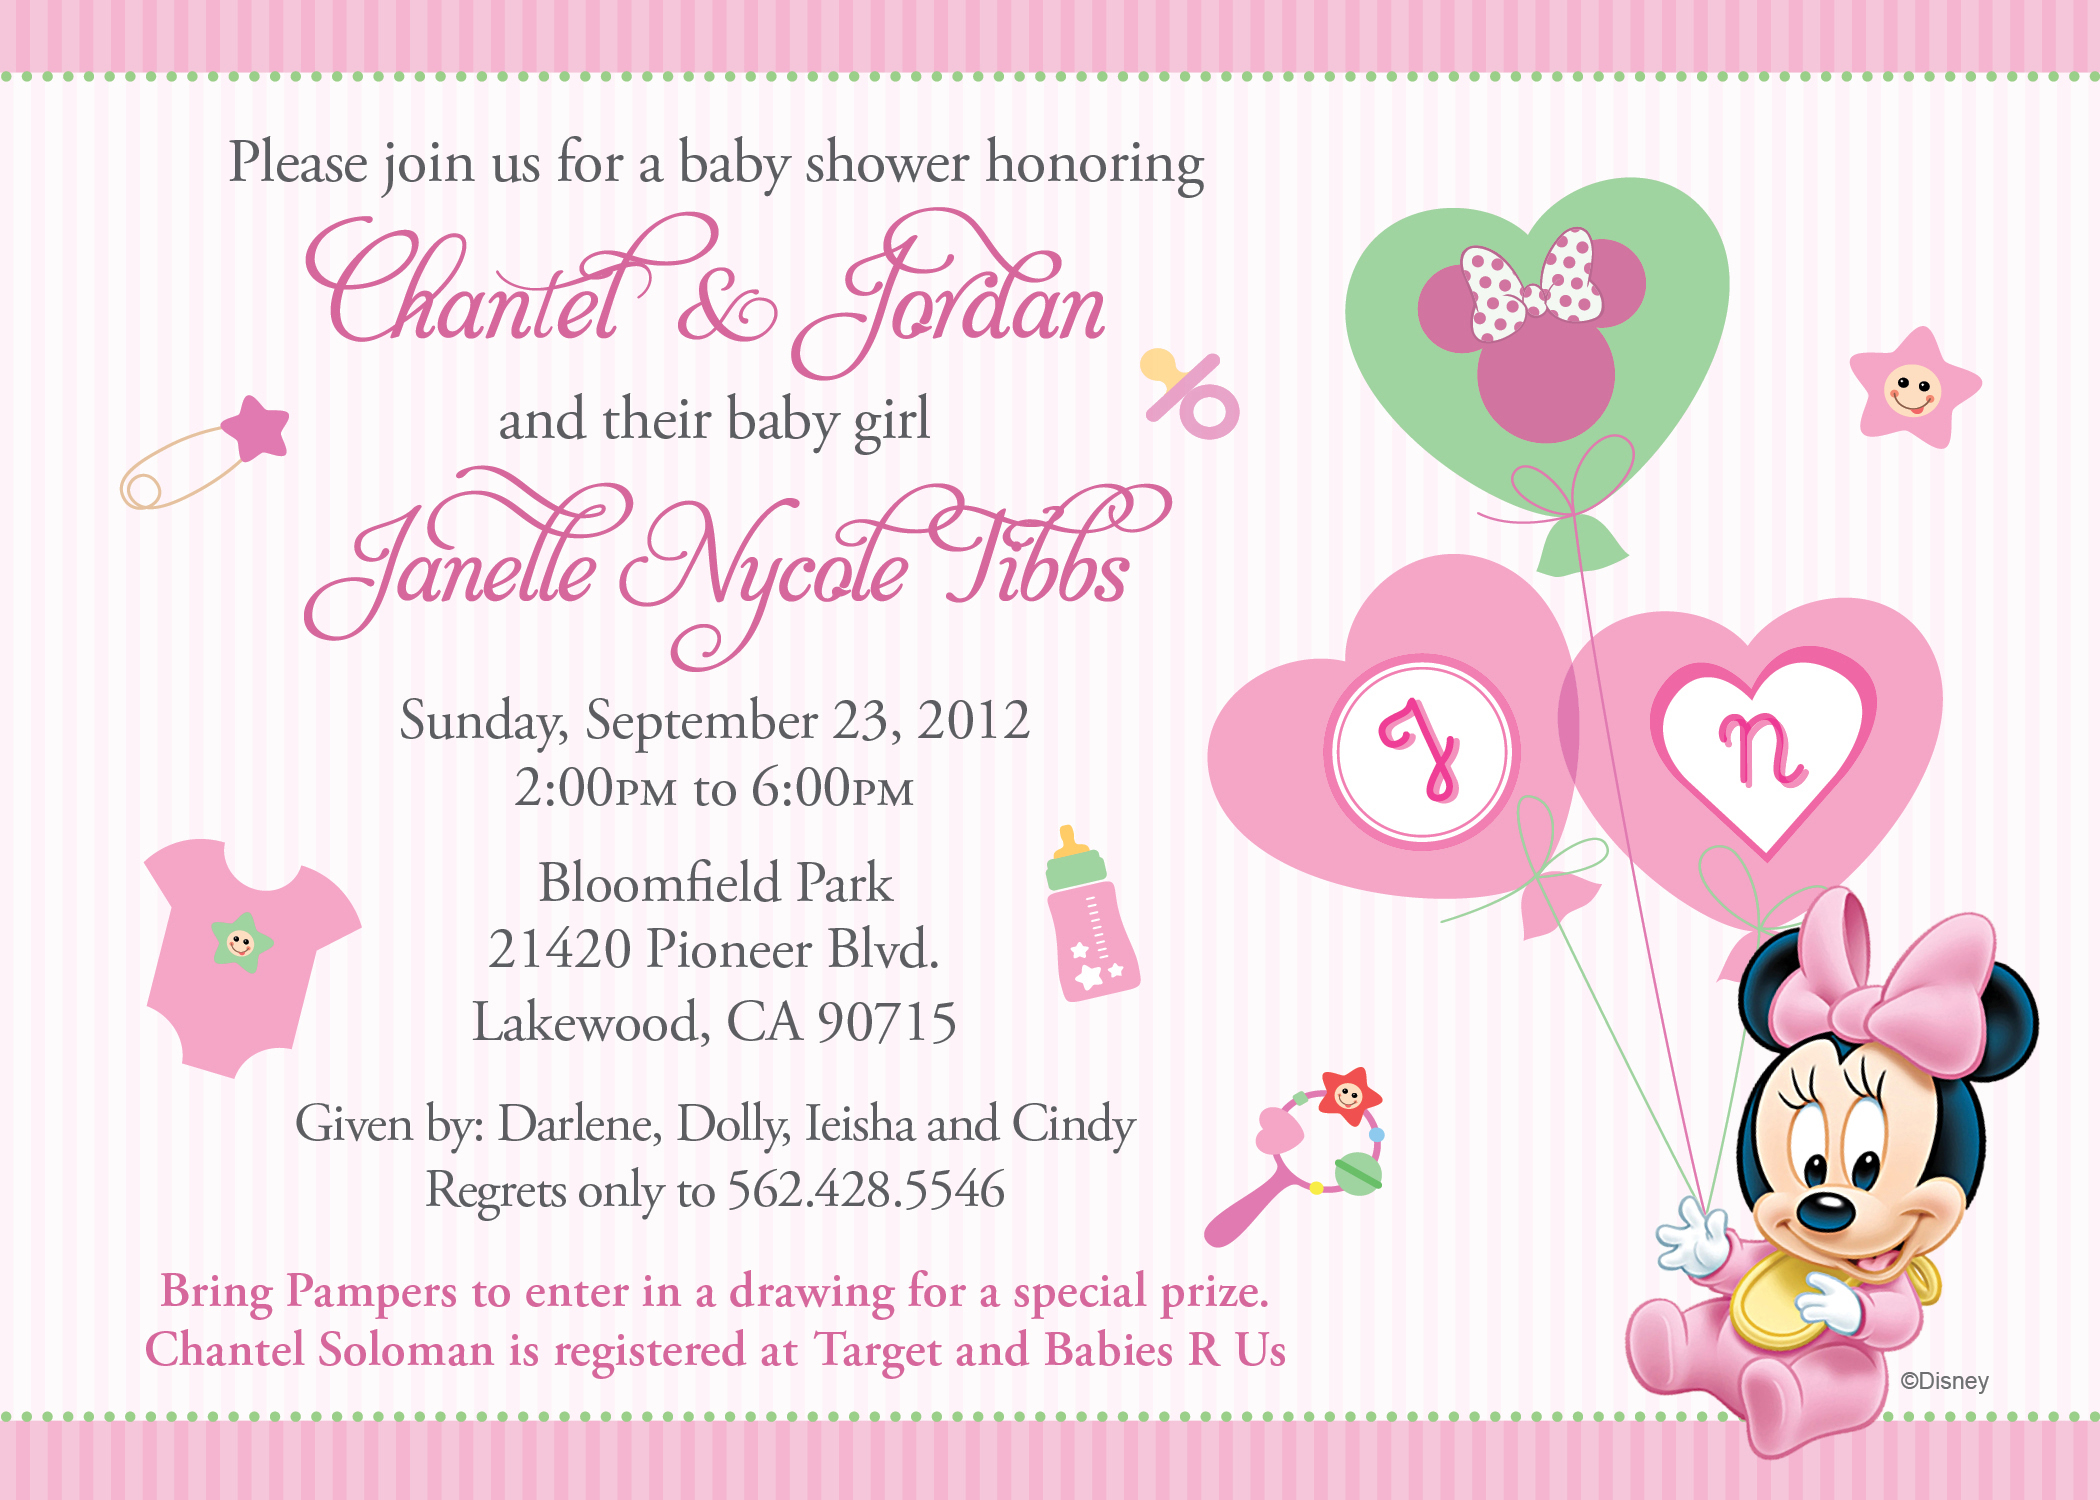 Twin Ba Shower Invitations Templates Ideas Invitations Templates within size 2100 X 1500